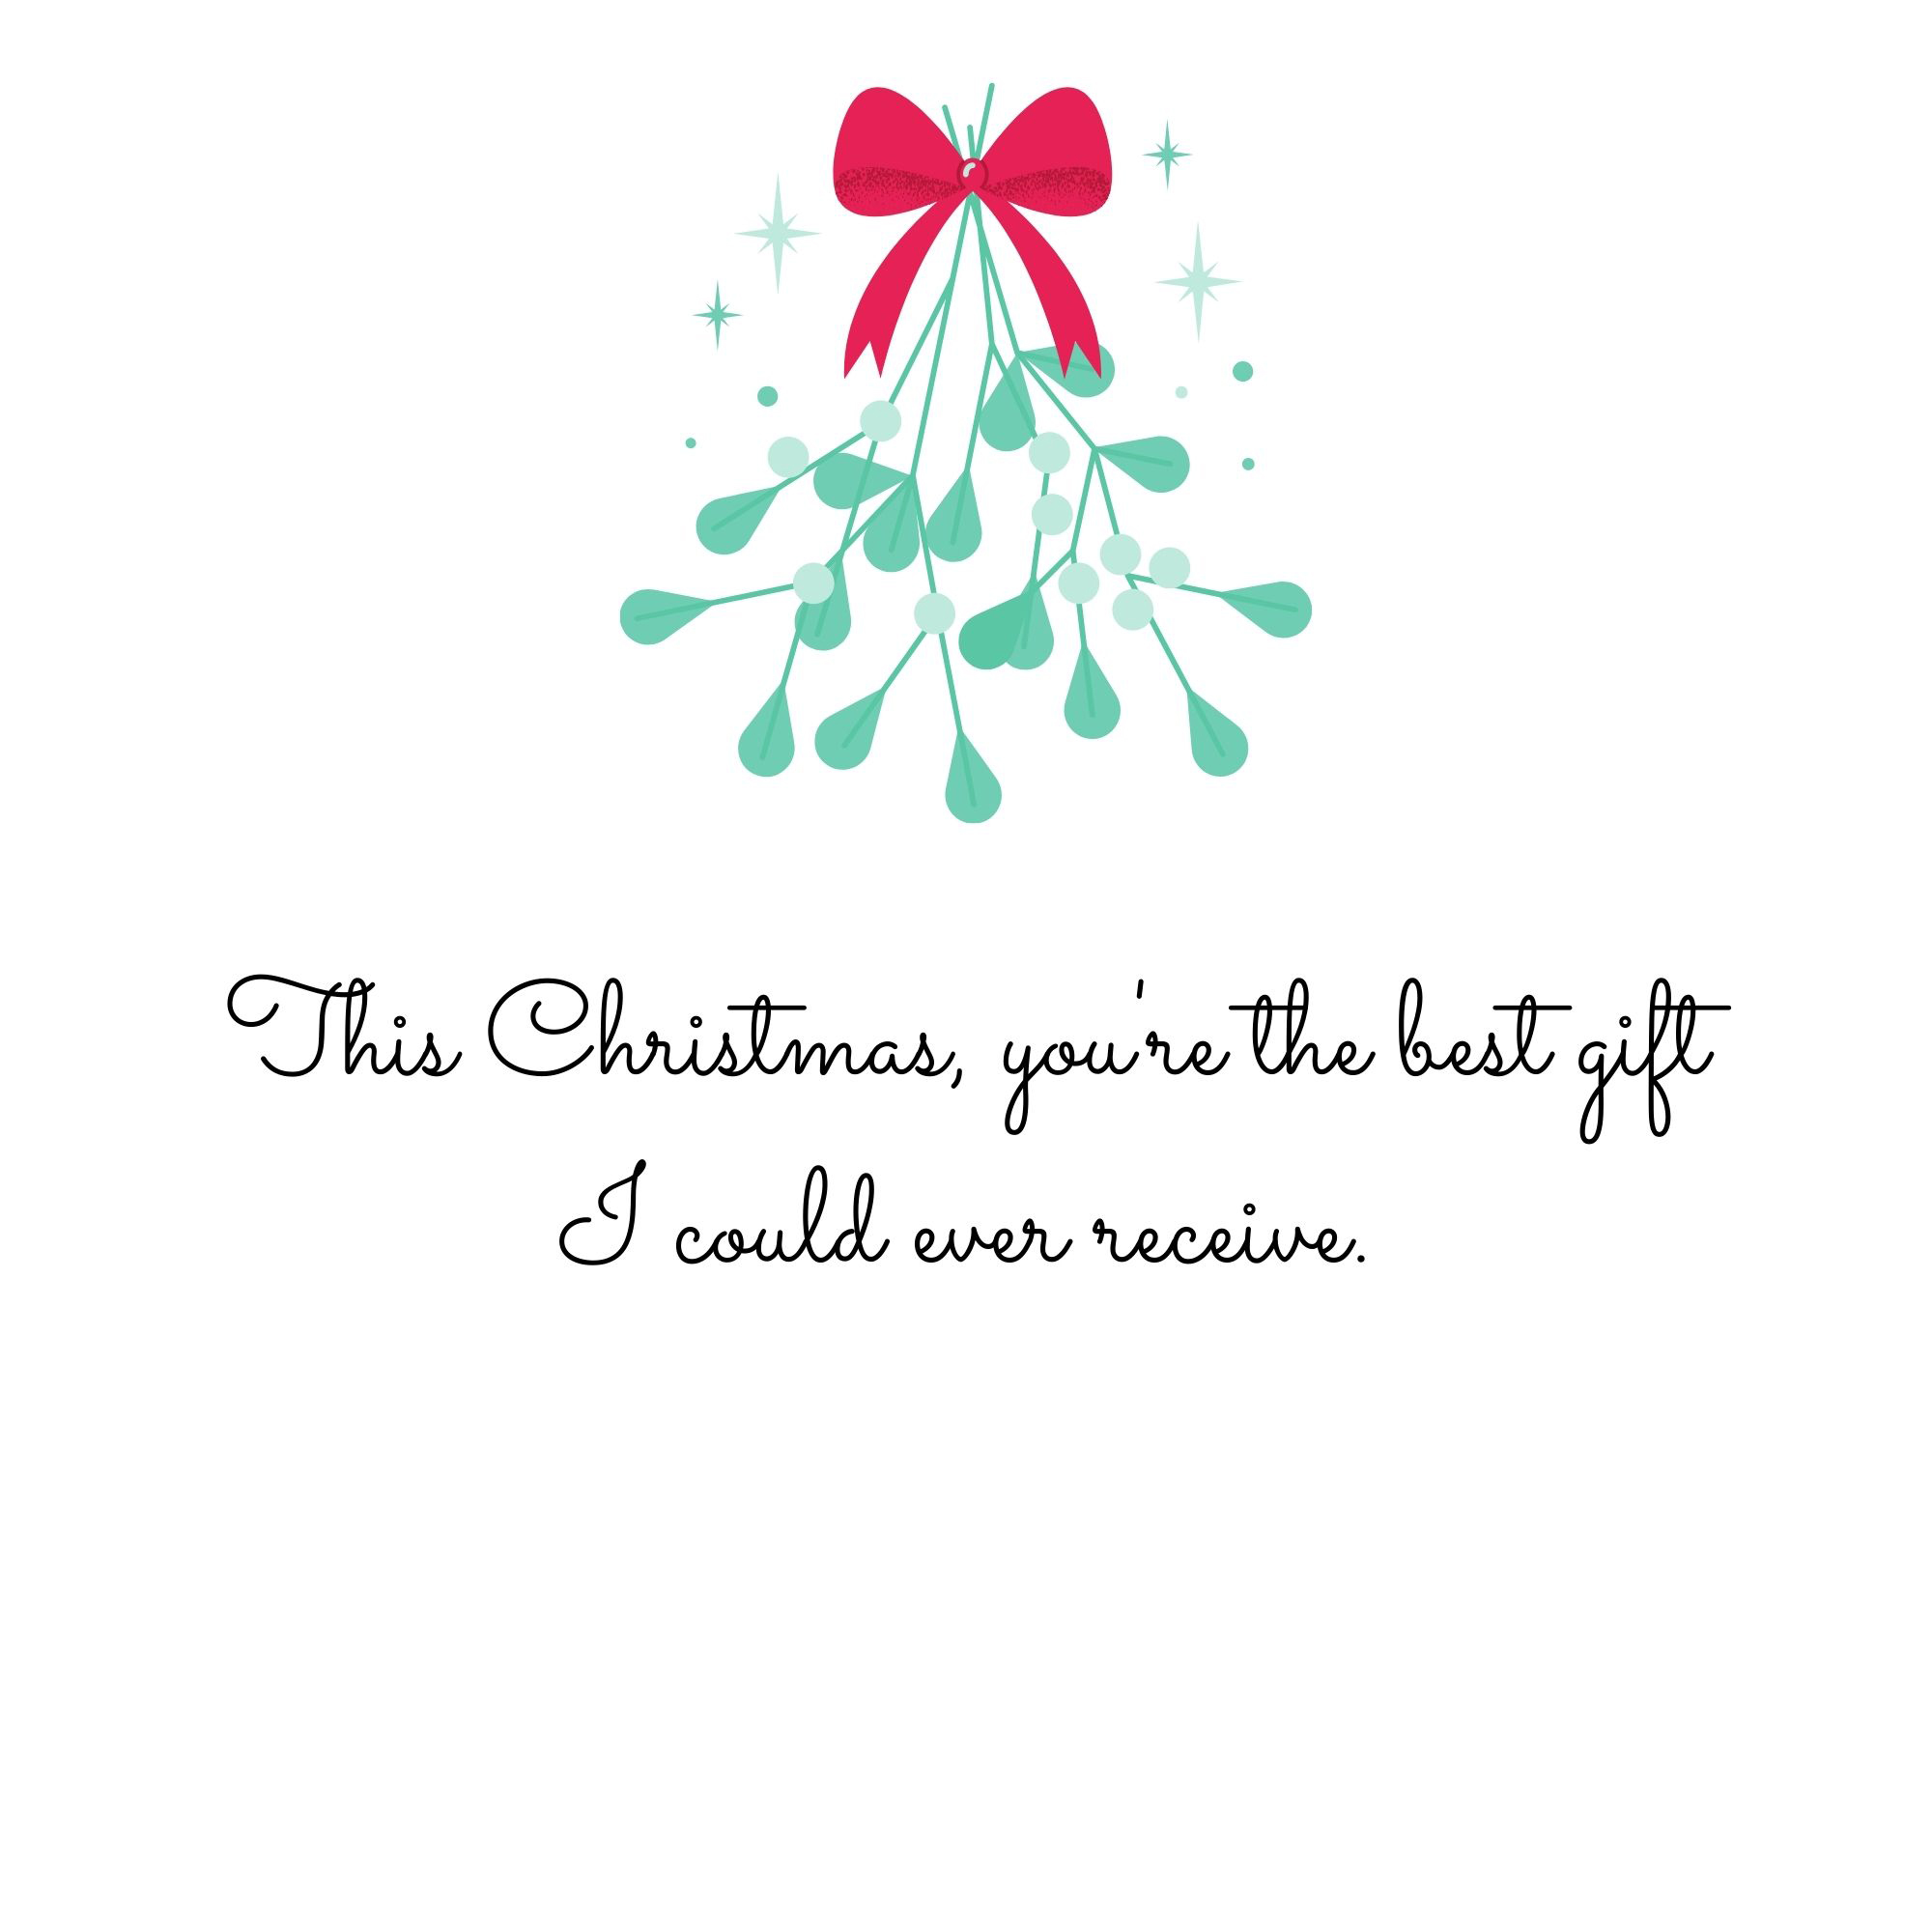 This Christmas You're the Best Gift